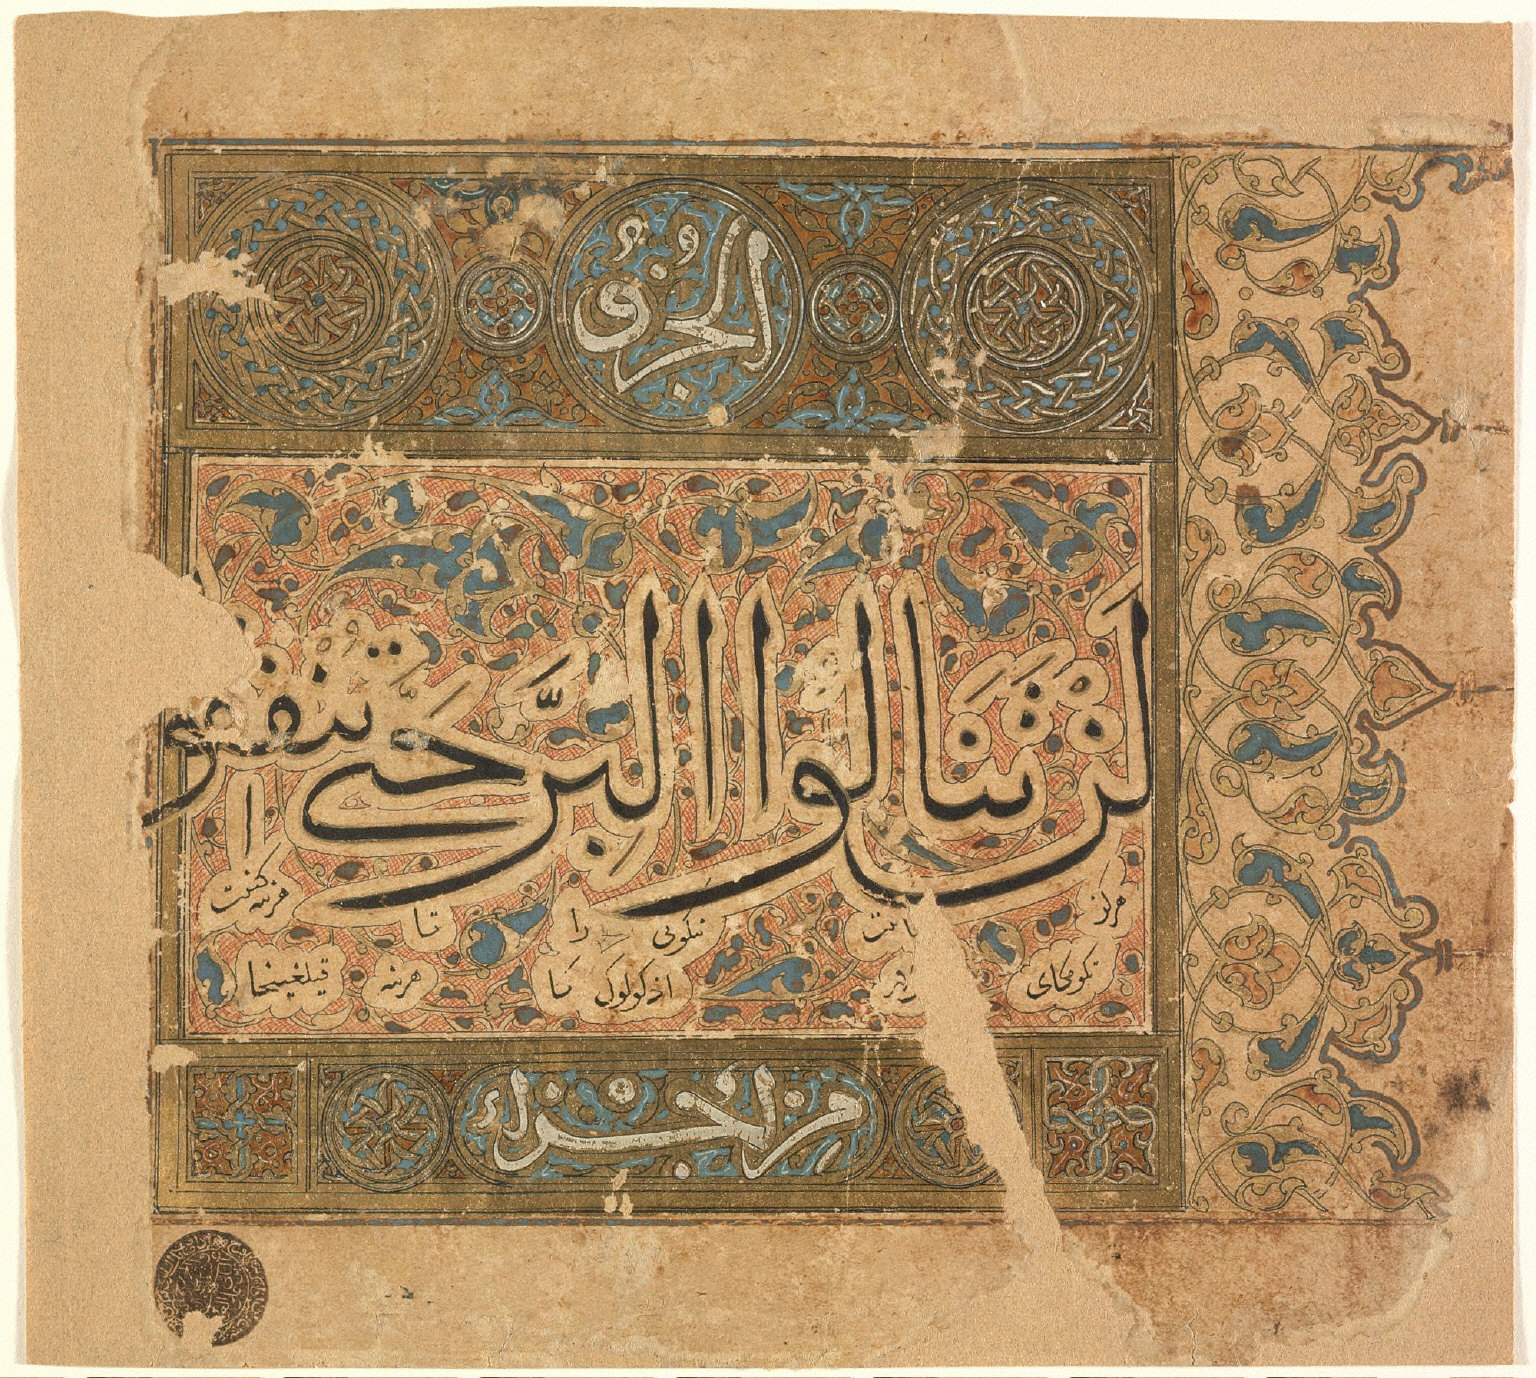 Introductory Heading to the Fourth Juz' (Section) of a Thirty-Part Manuscript of the Qur'an